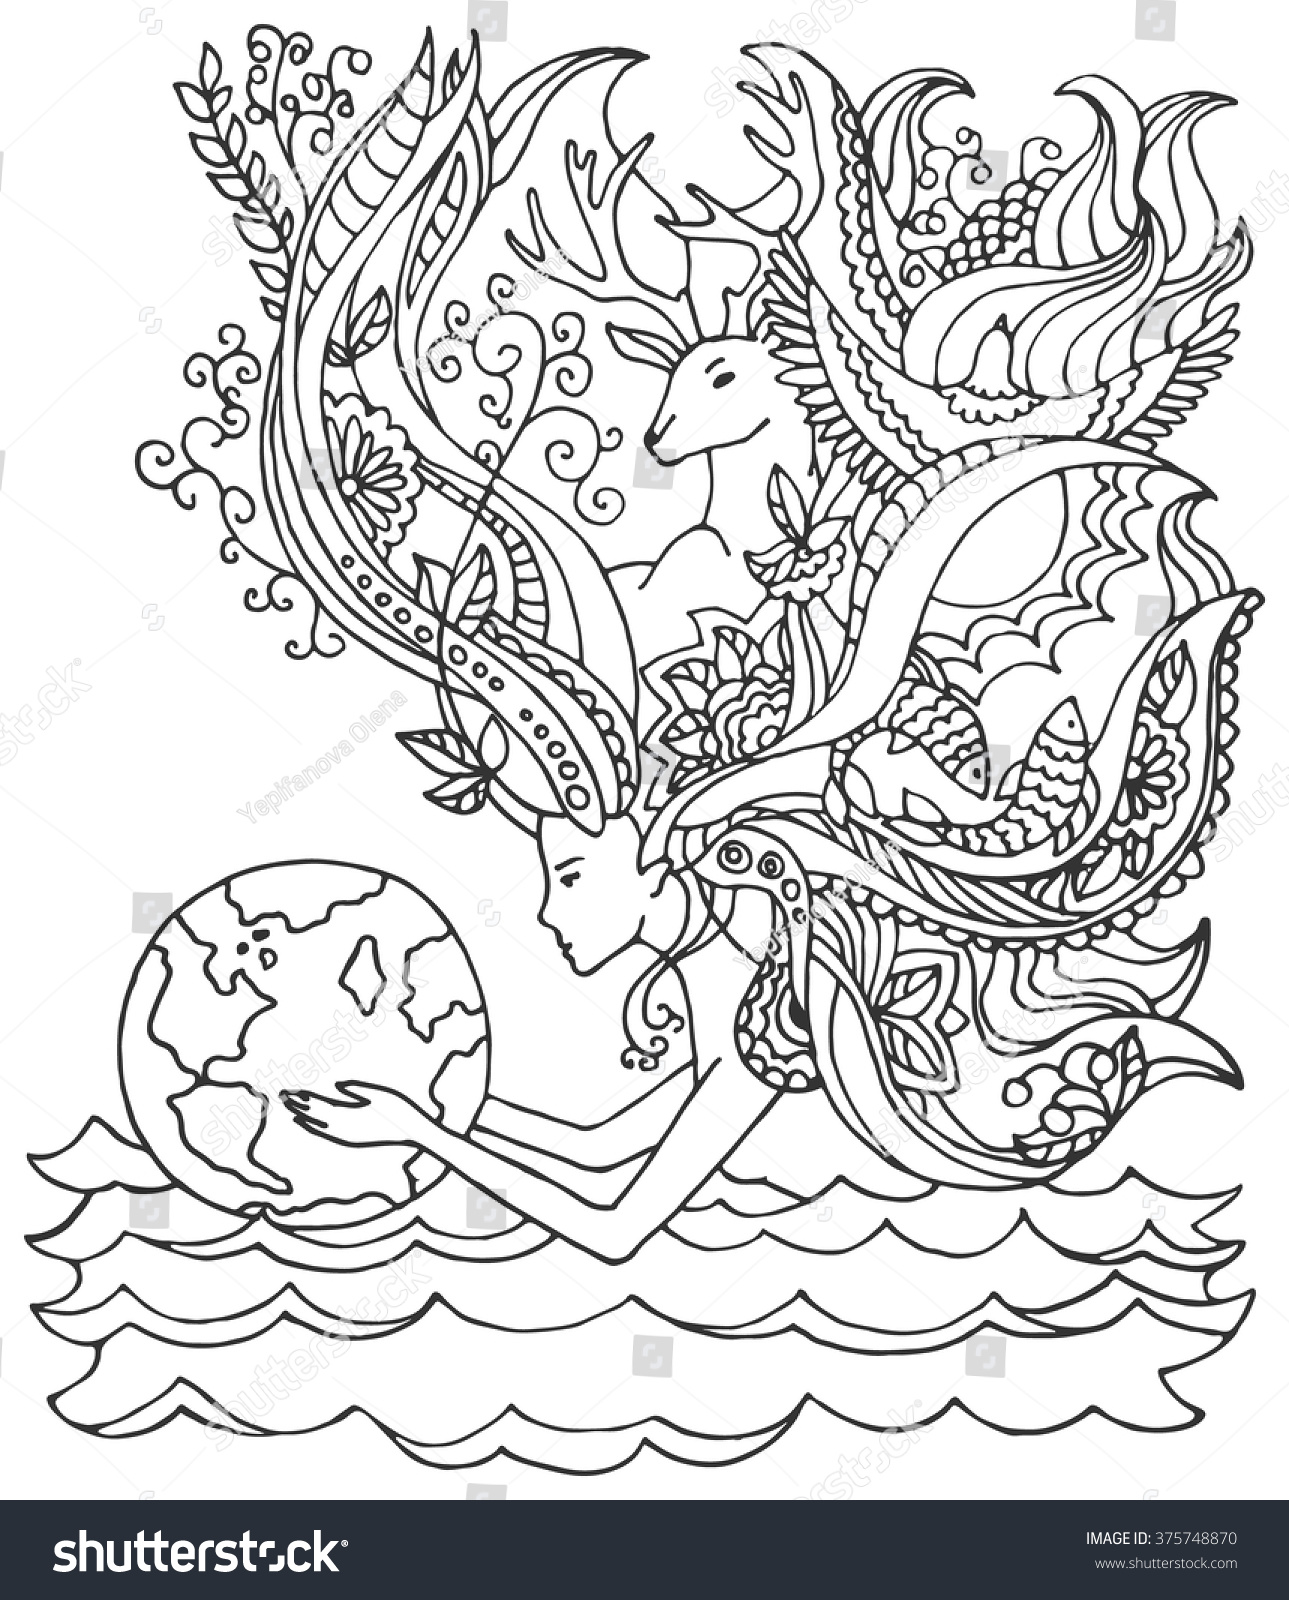 Earth day coloring pages for adults - Concept Of Happy Earth Day April 22 Ecology Human Holding Earth Woman